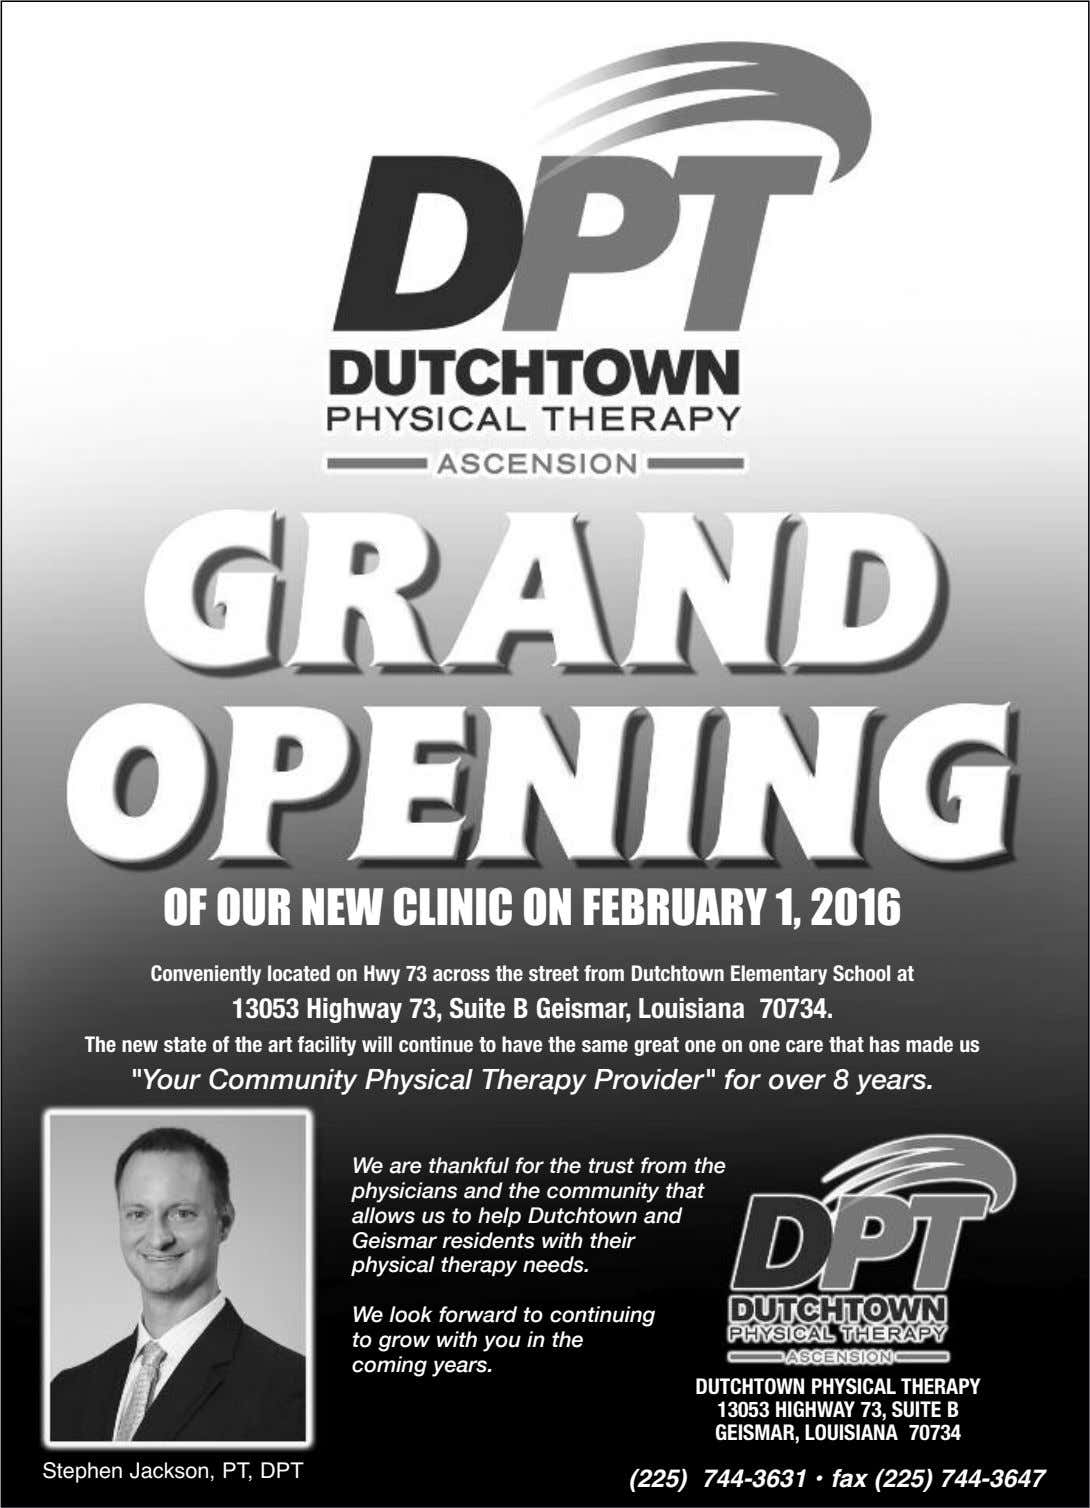 OF OUR NEW CLINIC ON FEBRUARY 1, 2016 Conveniently located on Hwy 73 across the